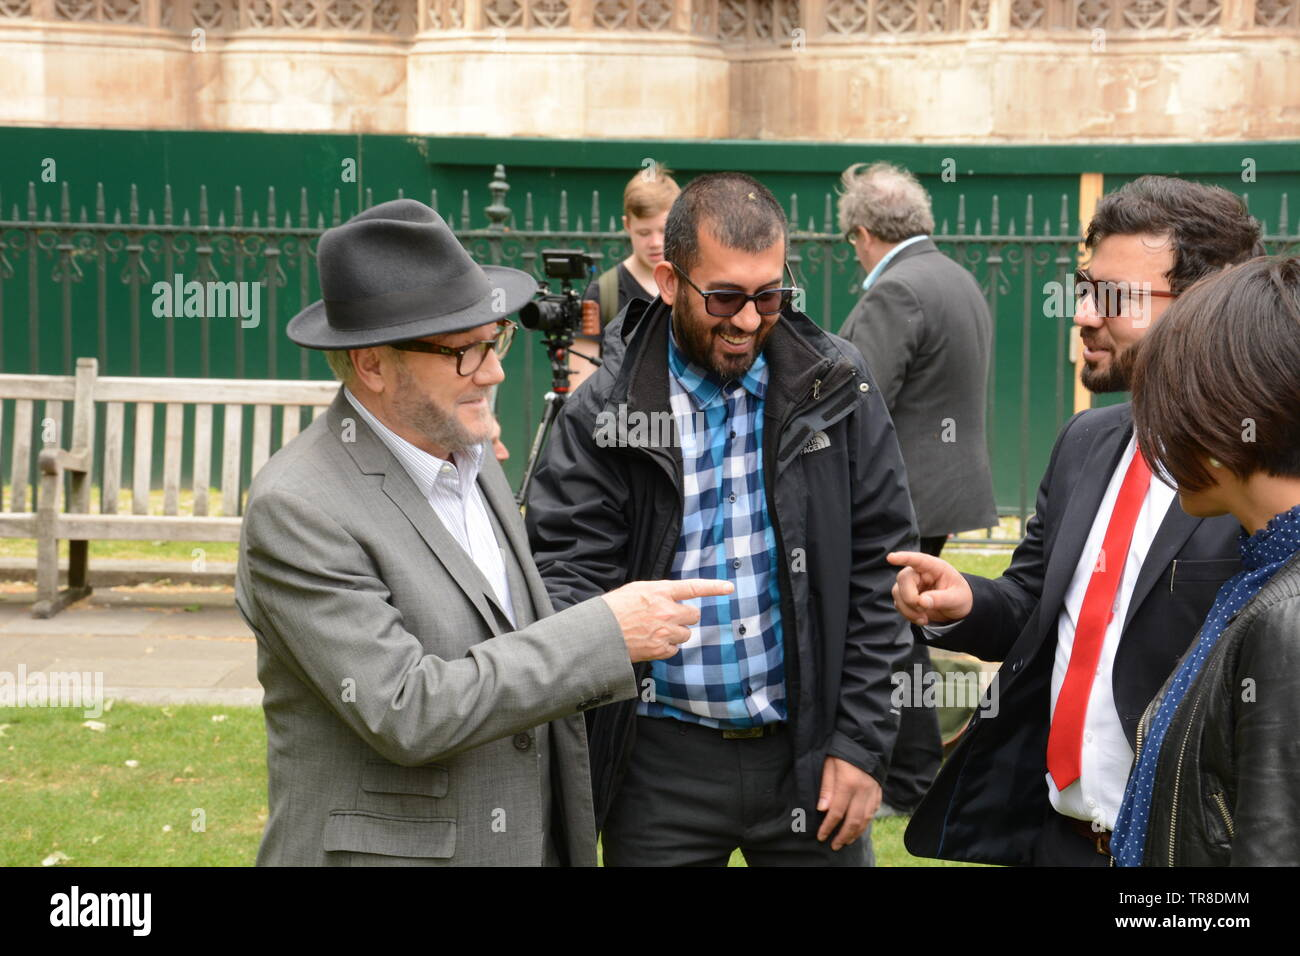 George Galloway in Old Place Yard, Westminster 30th May 2019 some PTM supporters spot George and ask him to speak at their demo. He politely refused. - Stock Image